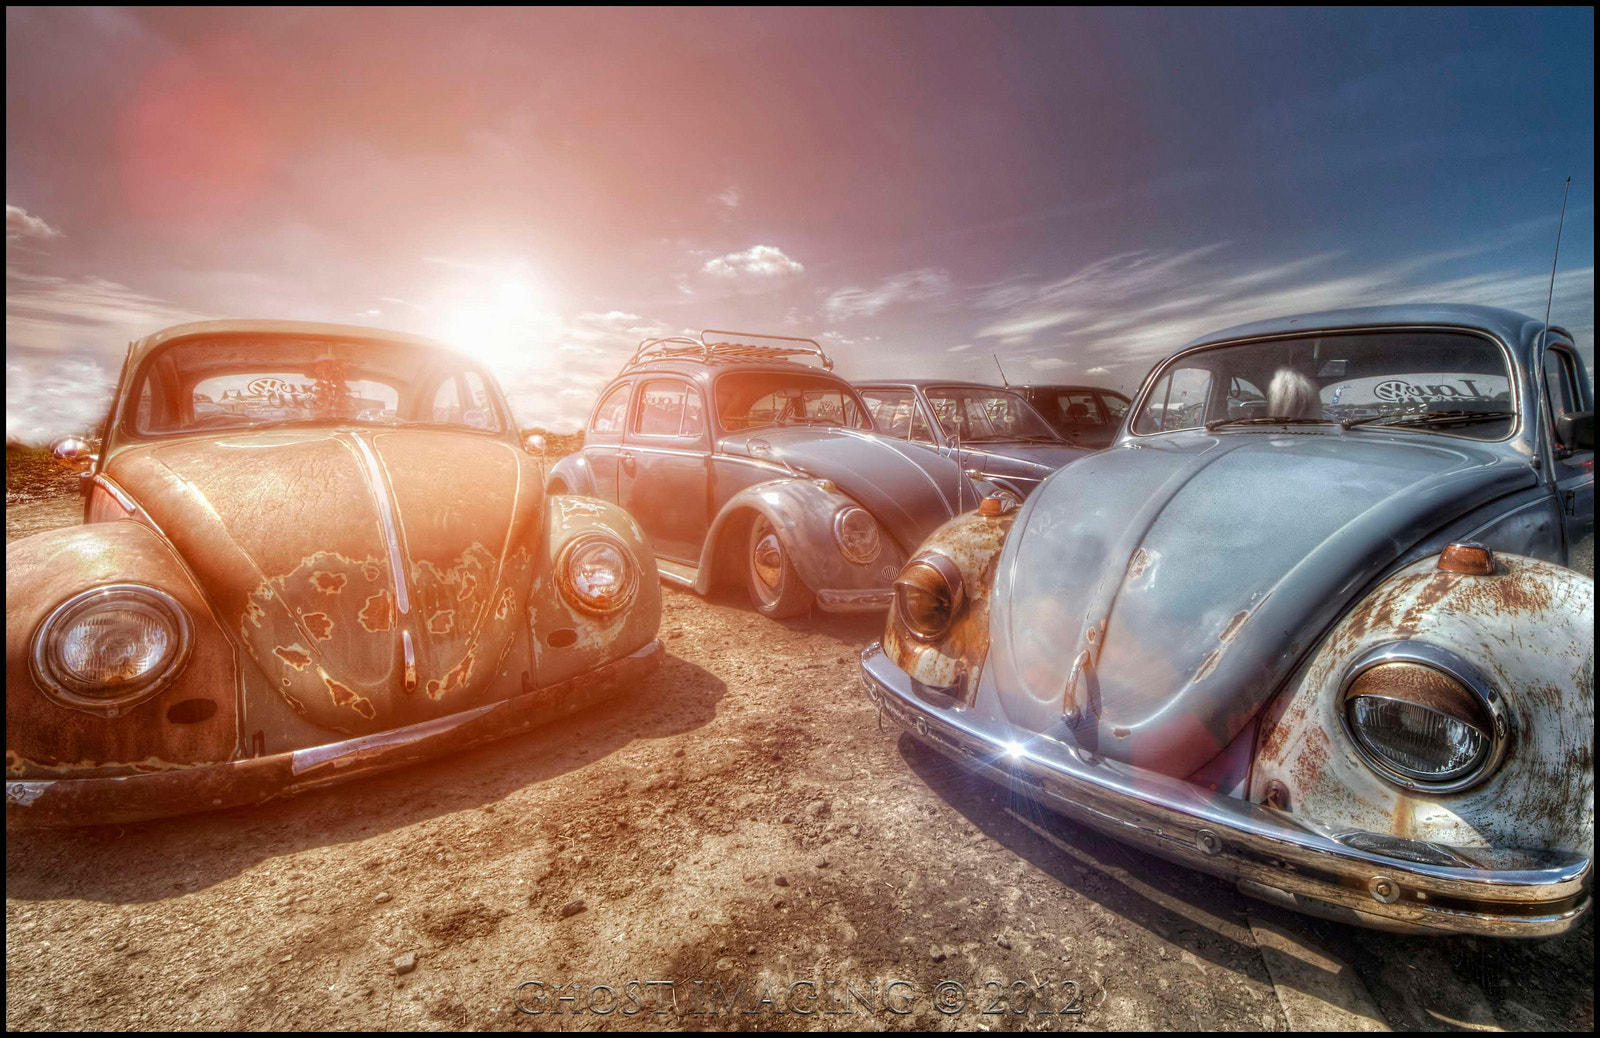 Photograph Bugs in the Sun by Jason Green on 500px